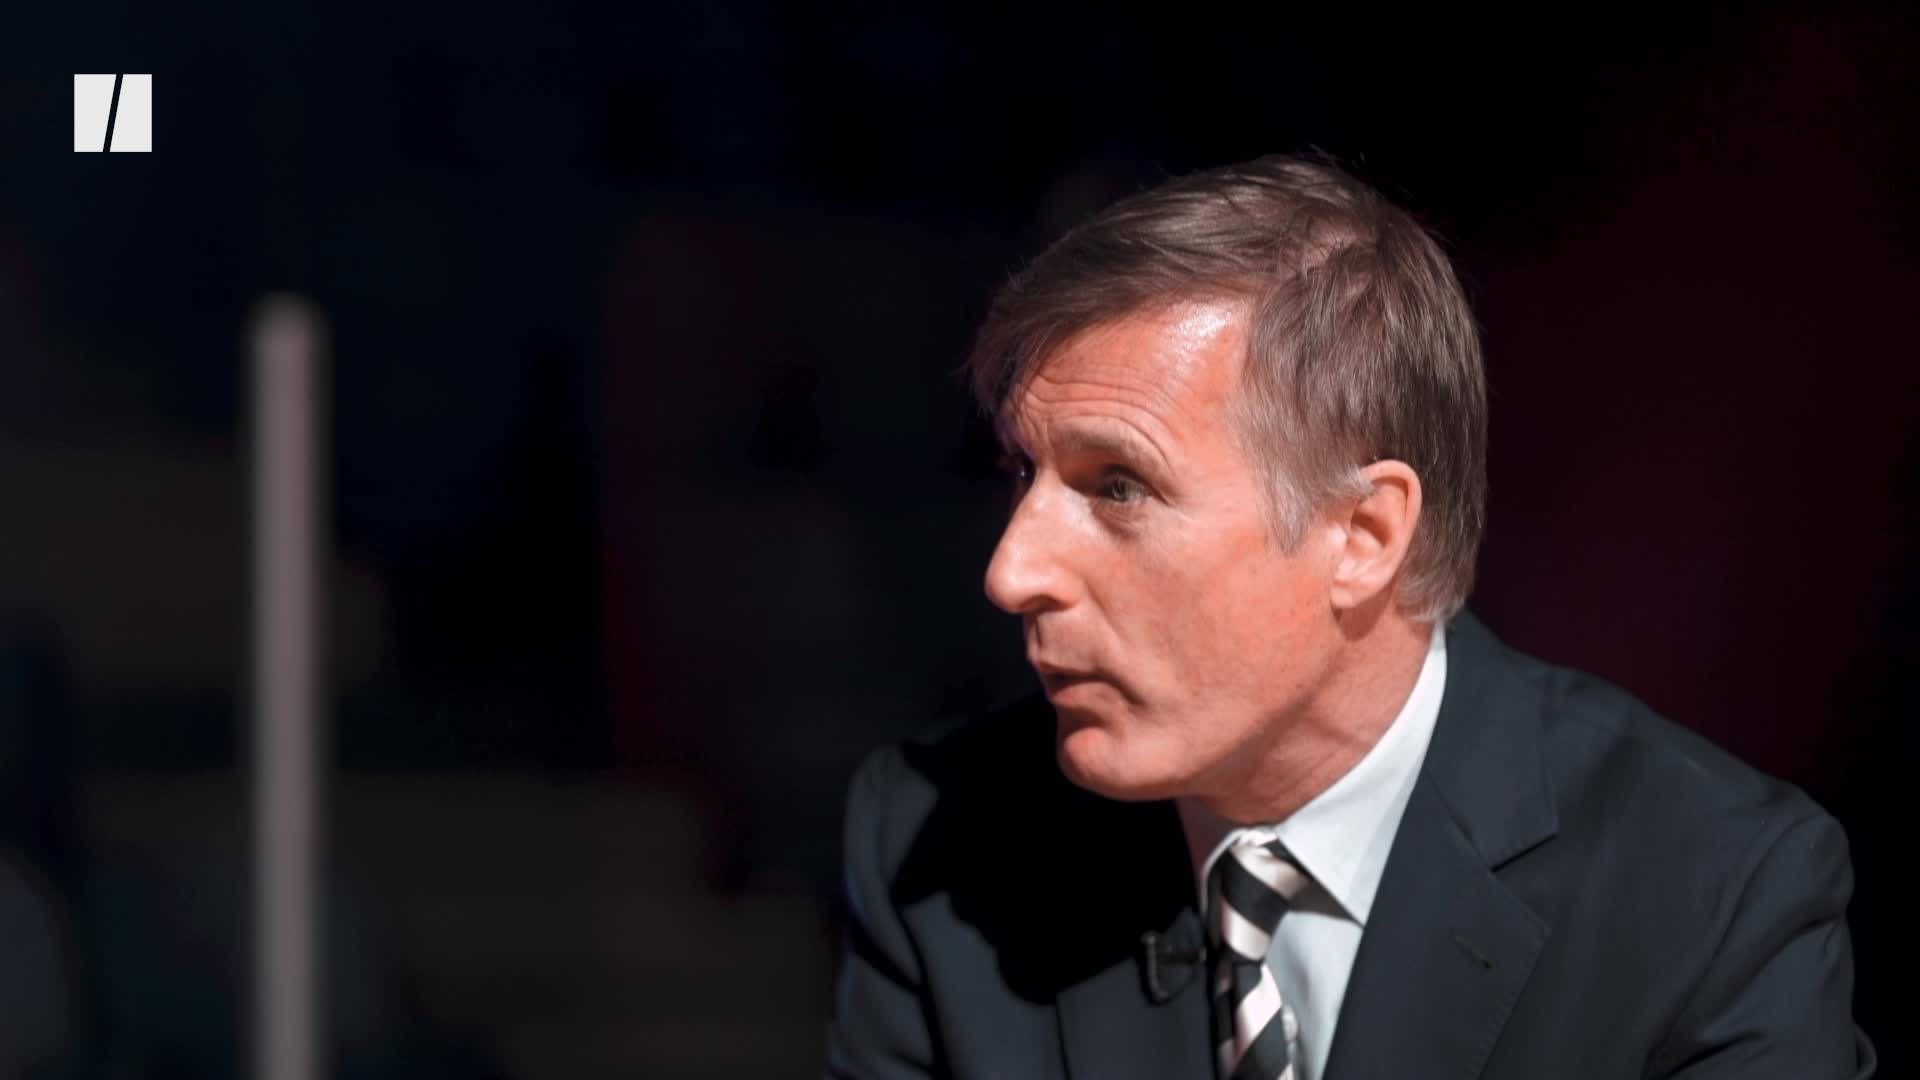 In Beauce, Maxime Bernier Risks Losing Everything In His Toughest Fight Yet